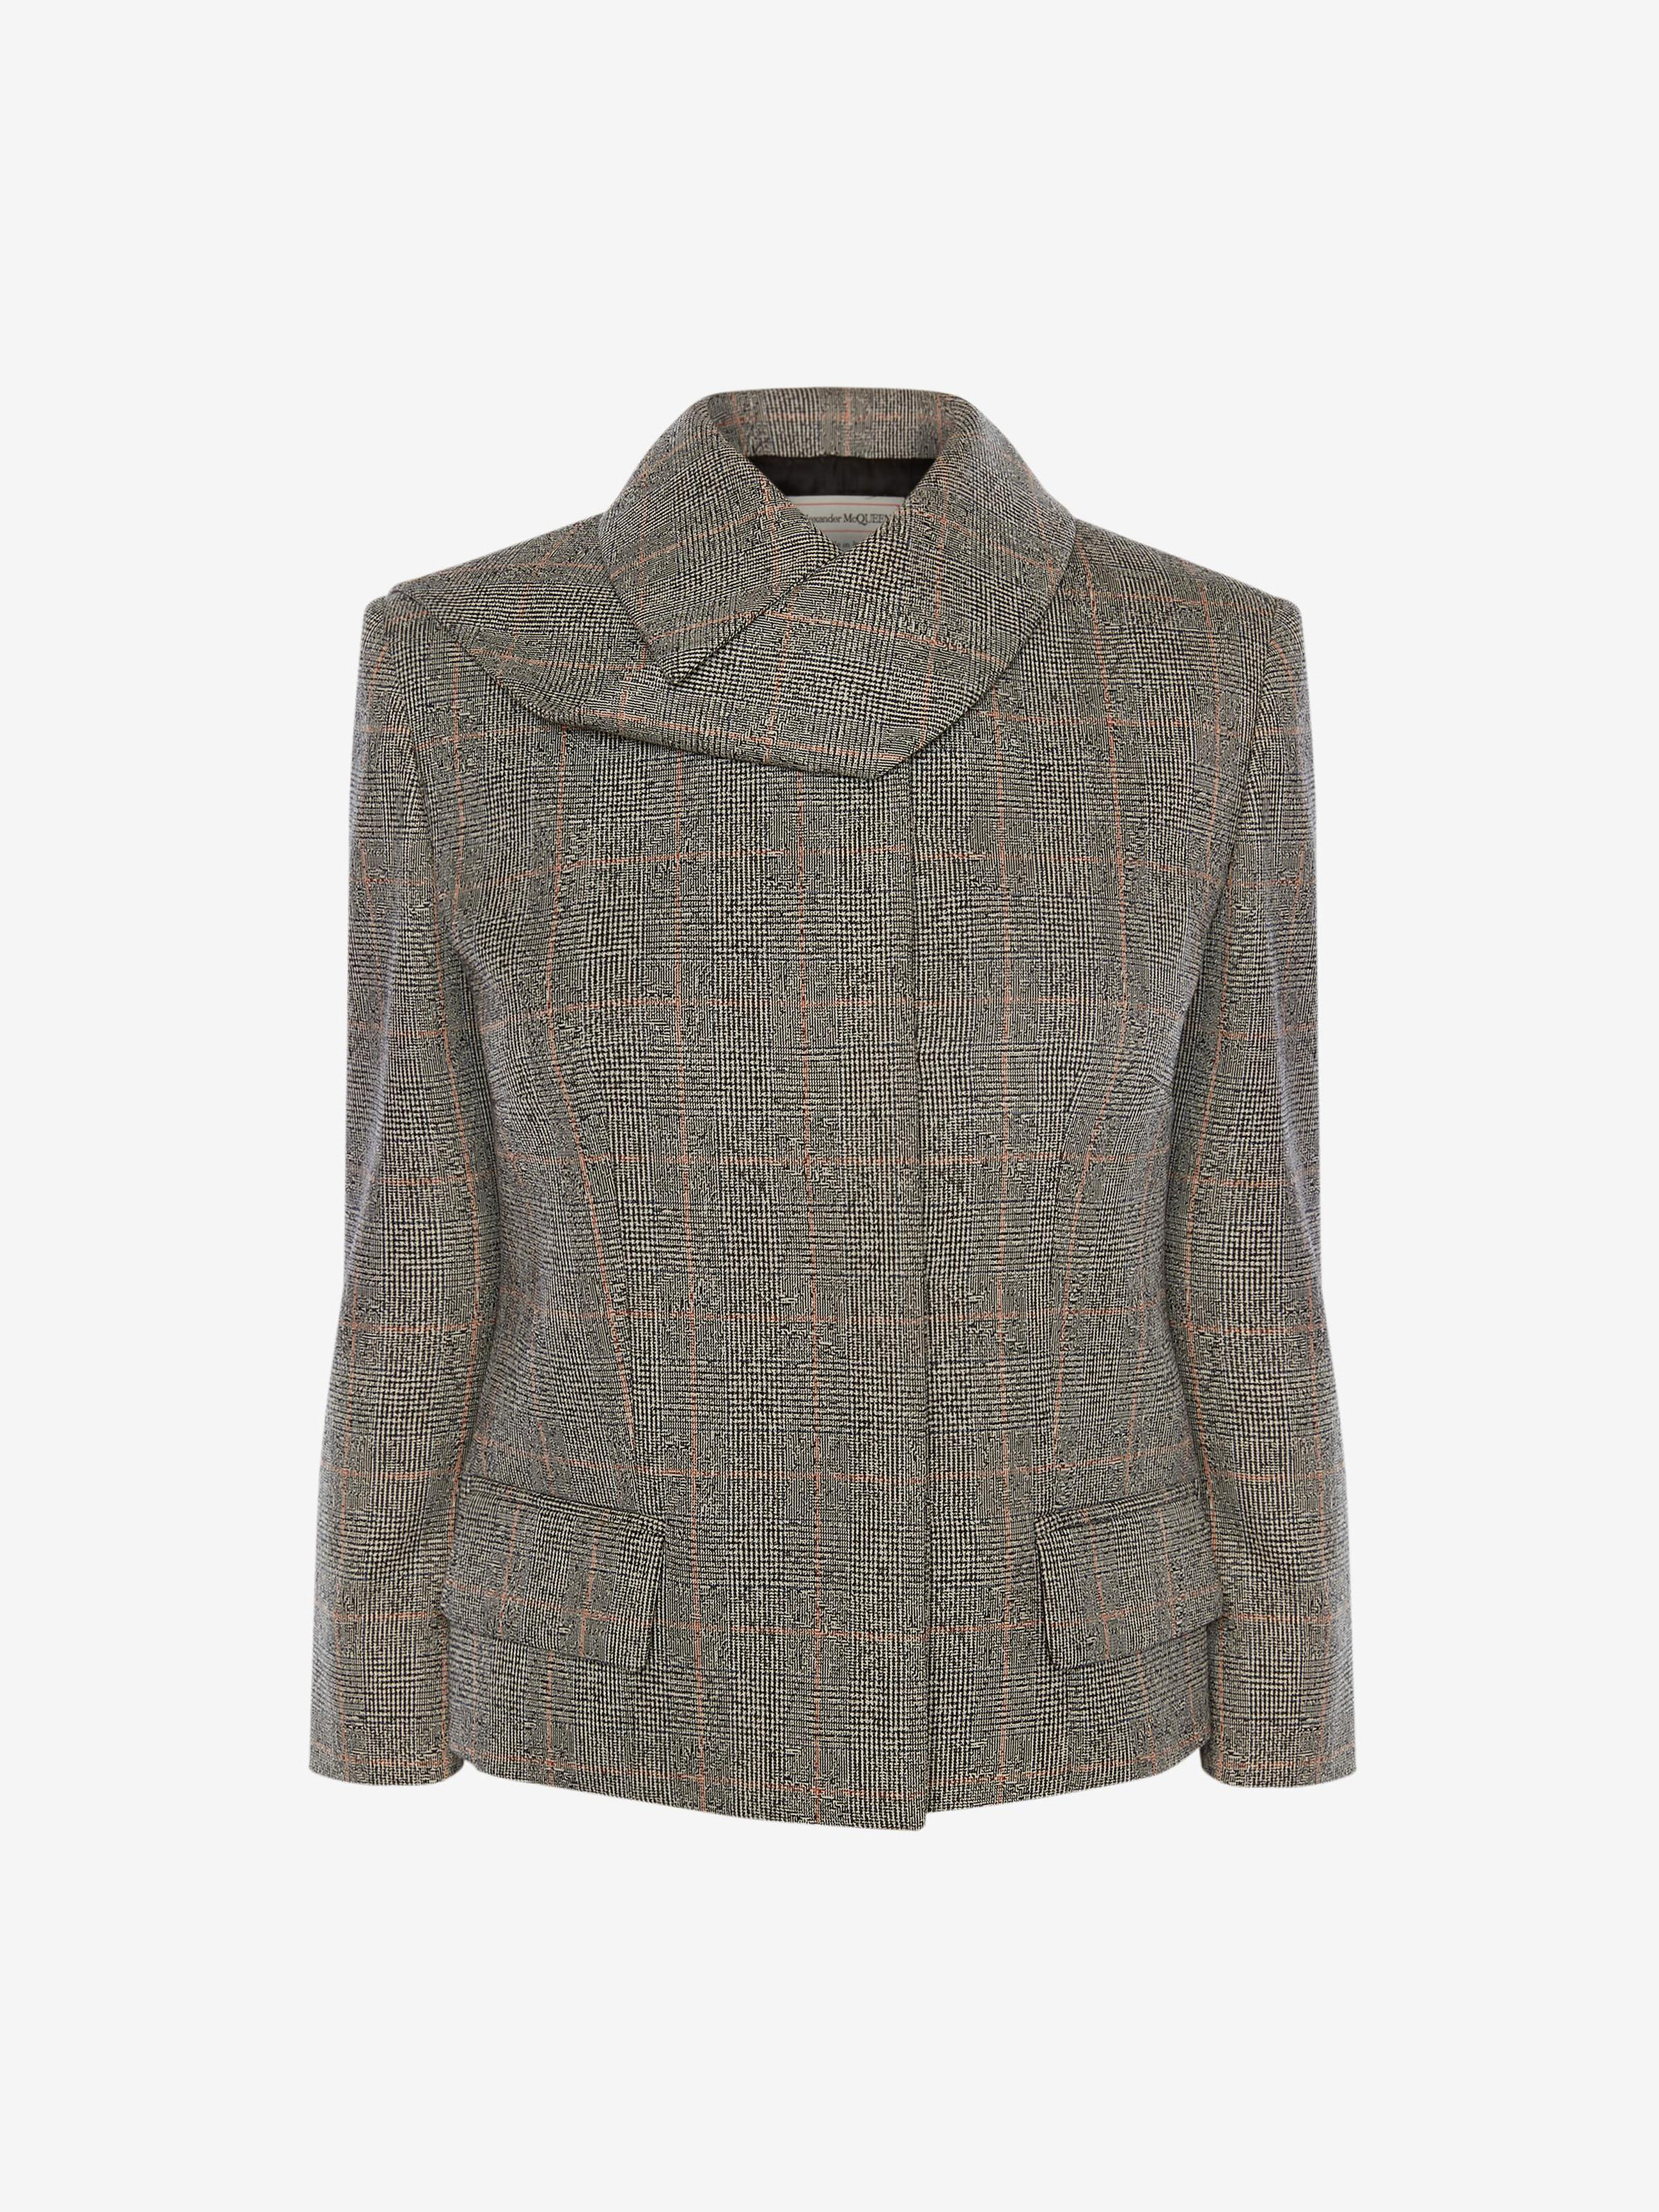 Scarf Neck Distressed Prince of Wales Jacket 3